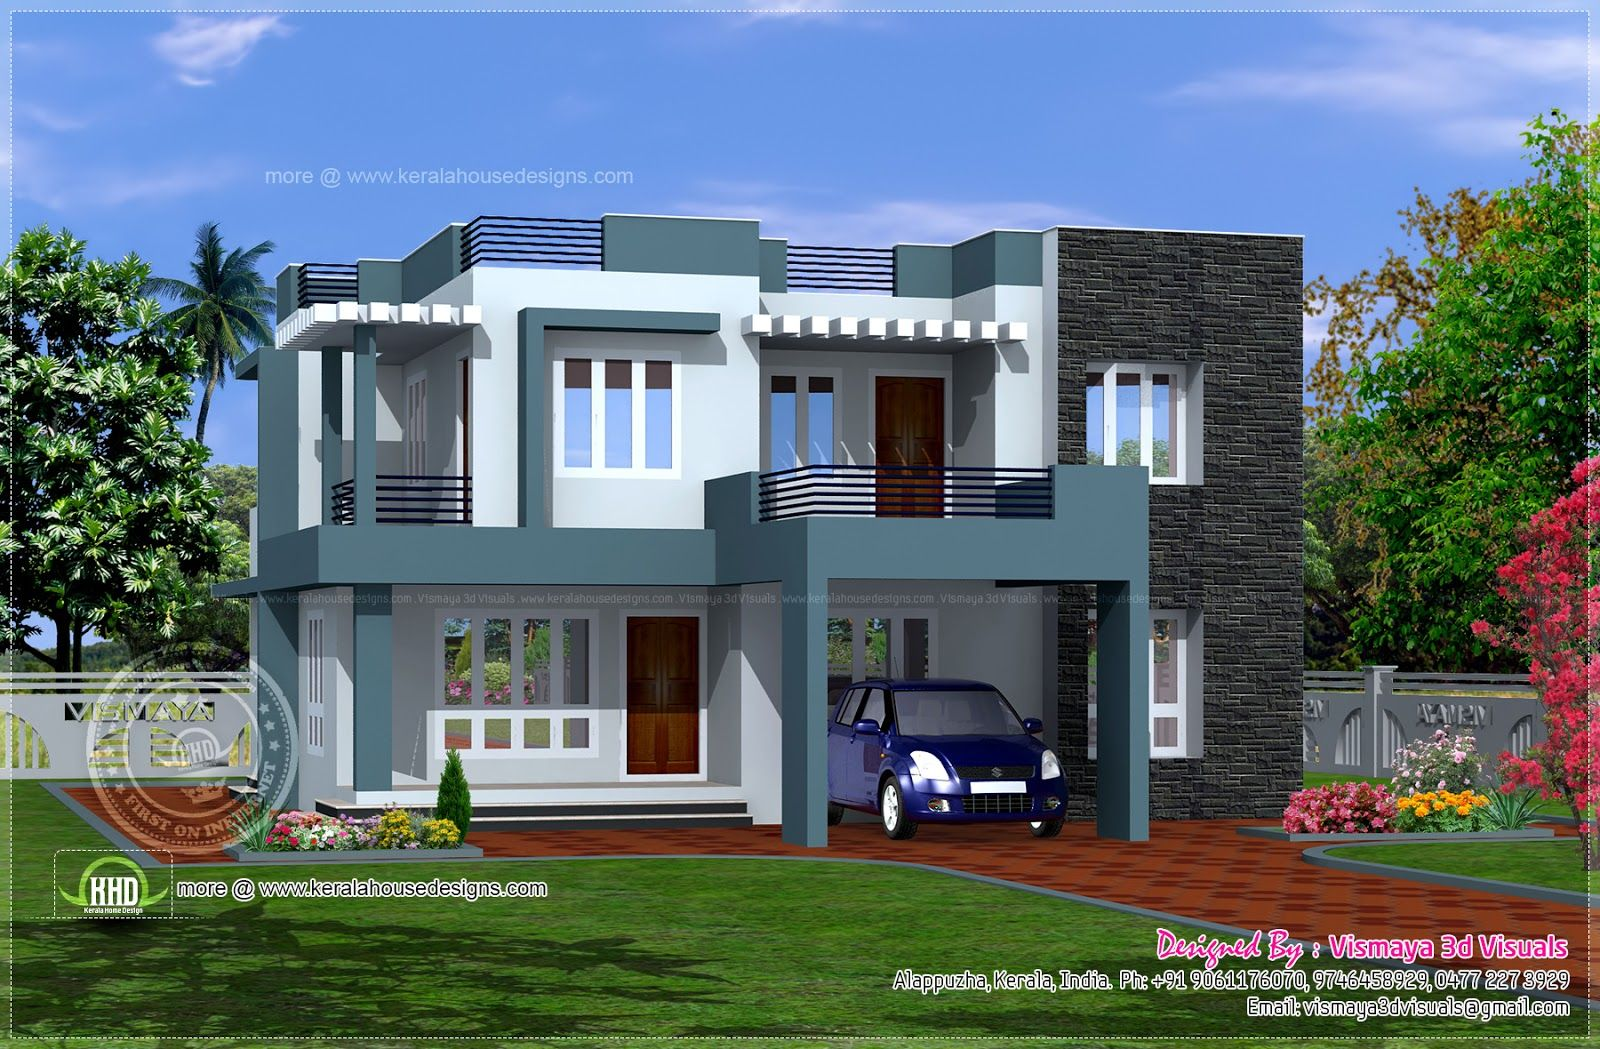 plans simple home modern house designs pictures building - Simple House Design With Second Floor